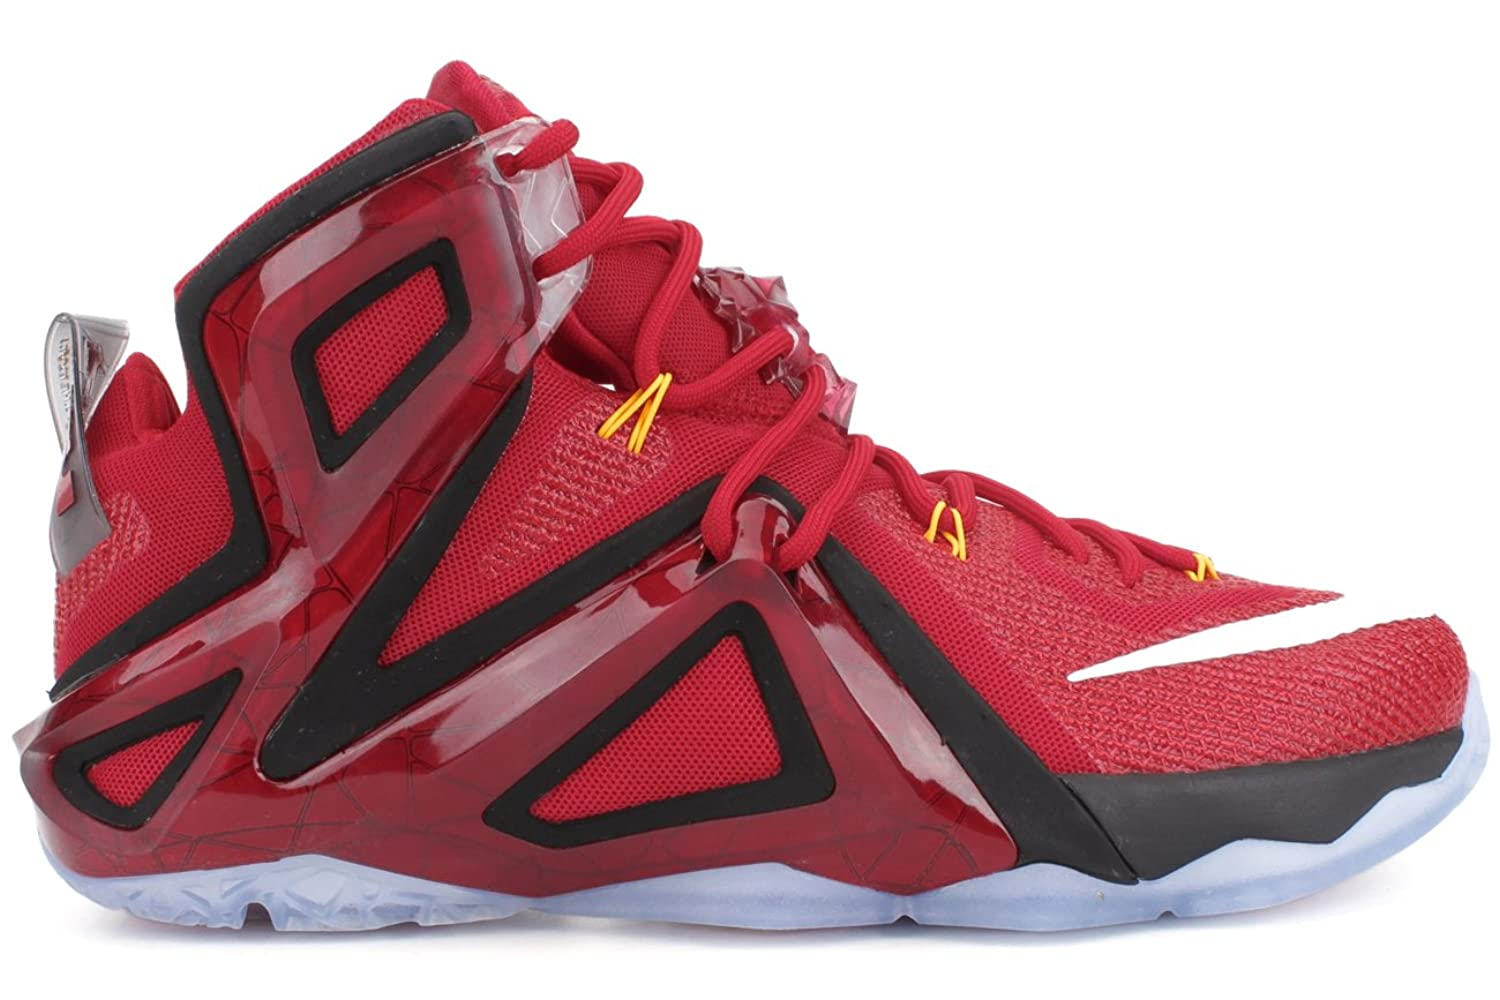 47cd8656932 ... best price amazon nike lebron xii elite mens basketball shoes basketball  0a478 6f198